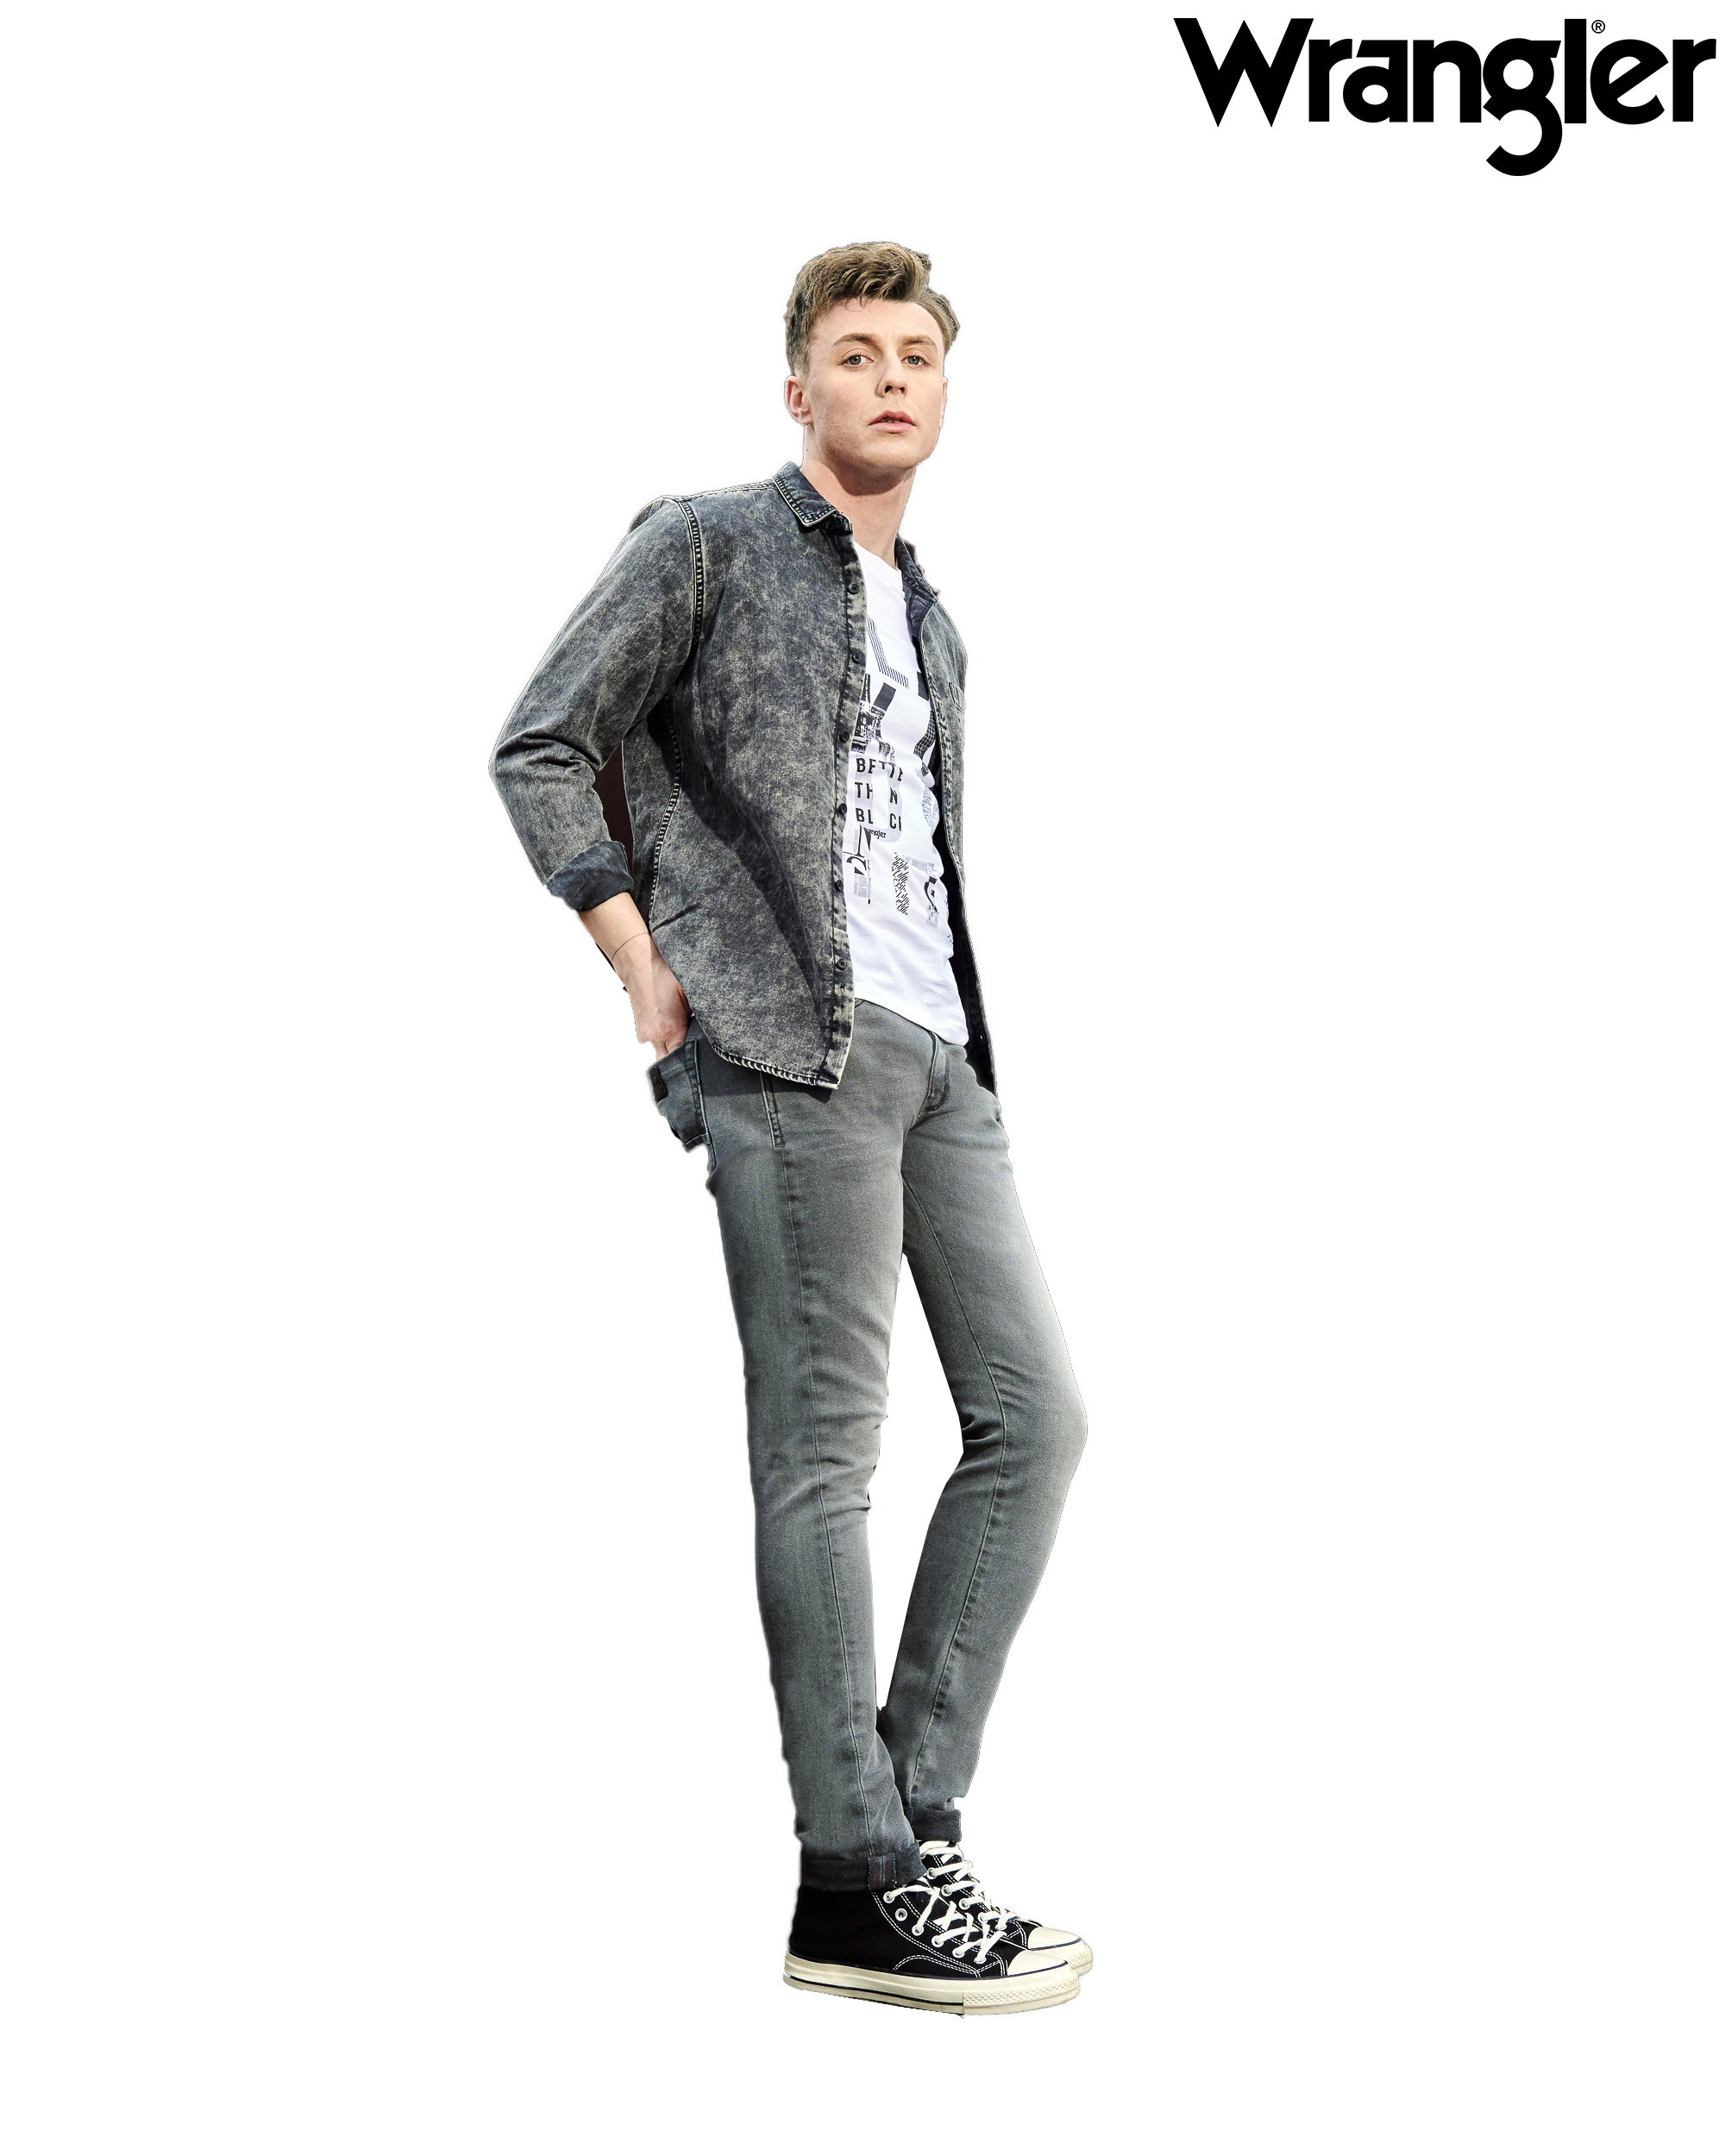 Redefine Style with Wrangler's Monochrome Collection